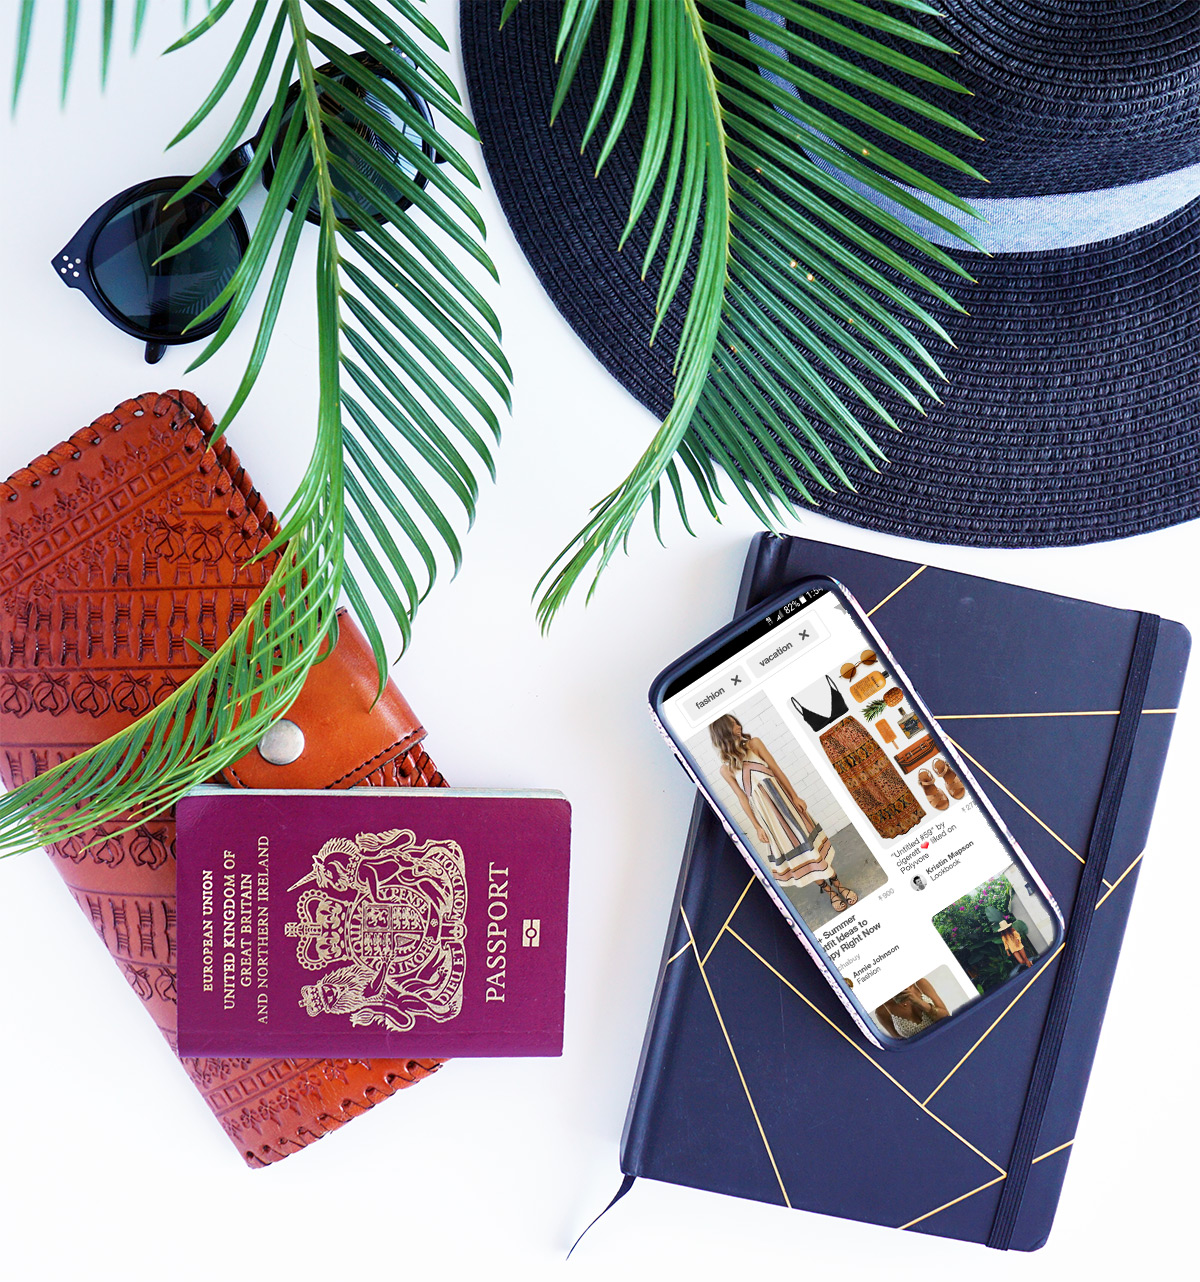 How to prep and pack for a vacation | Simple tips to help you plan your vacation outfits and create a hard-working capsule vacation wardrobe